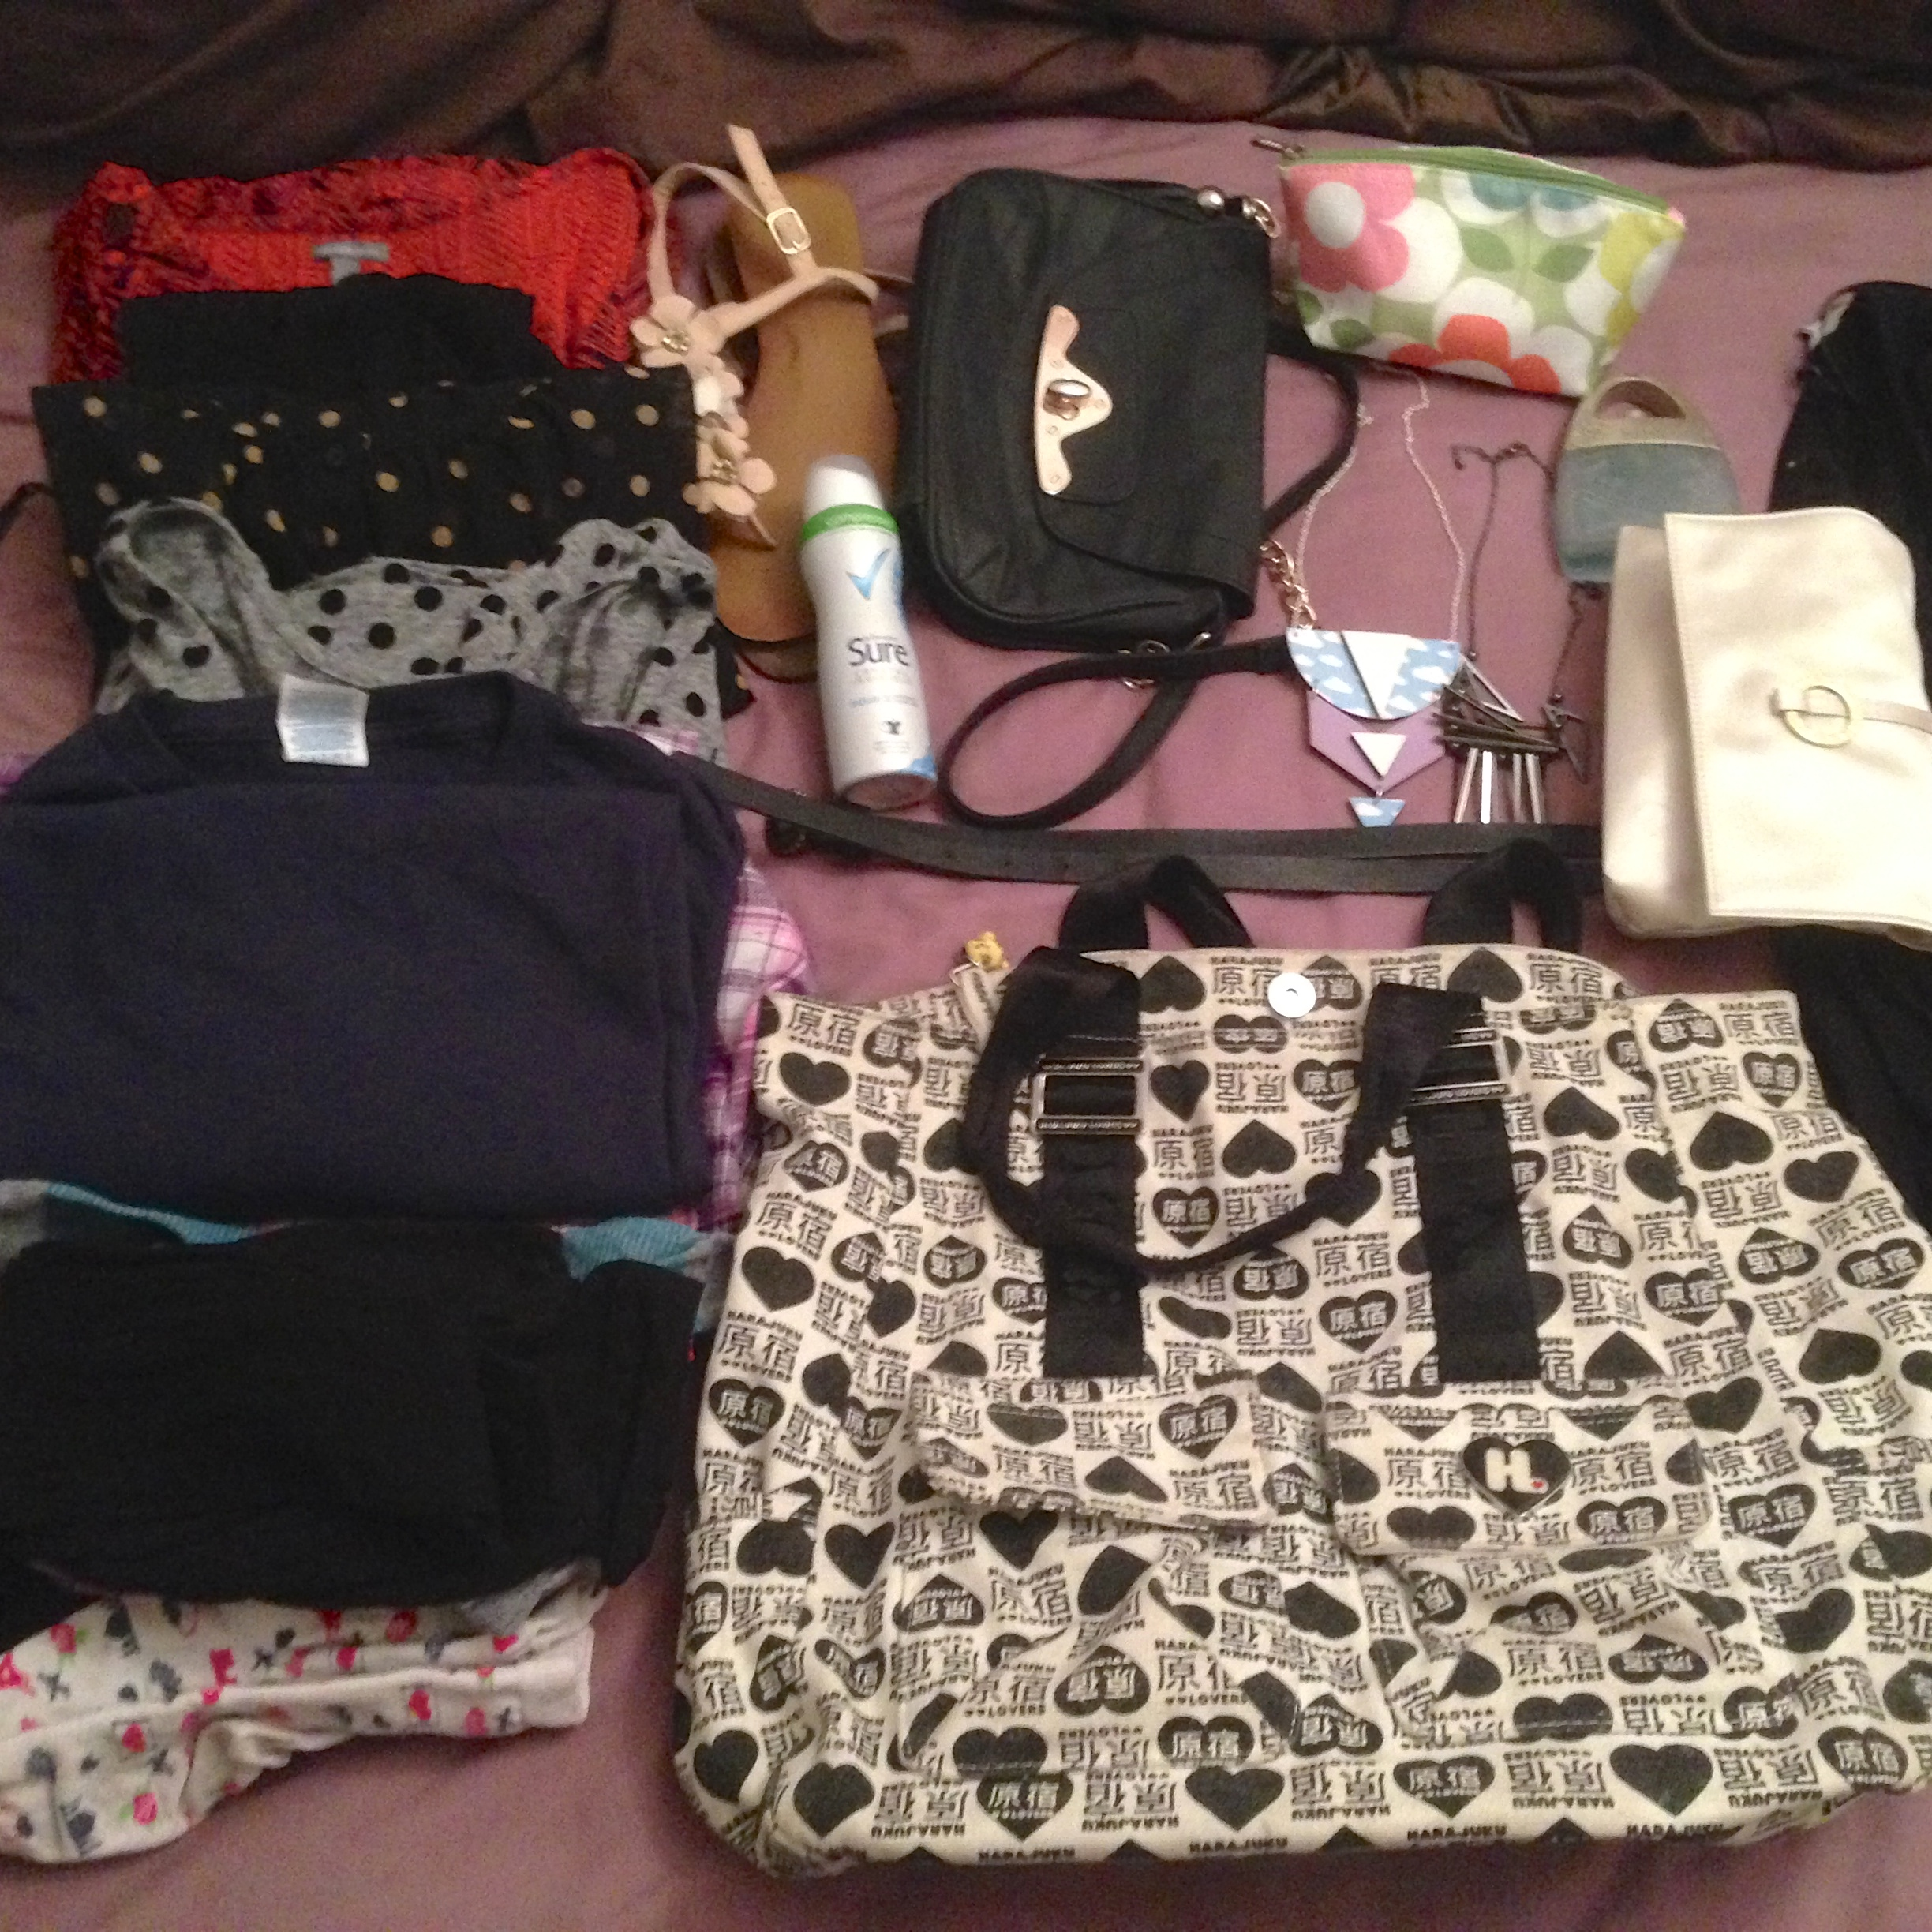 Packing challenge: How I packed a shoulder bag for one weekend